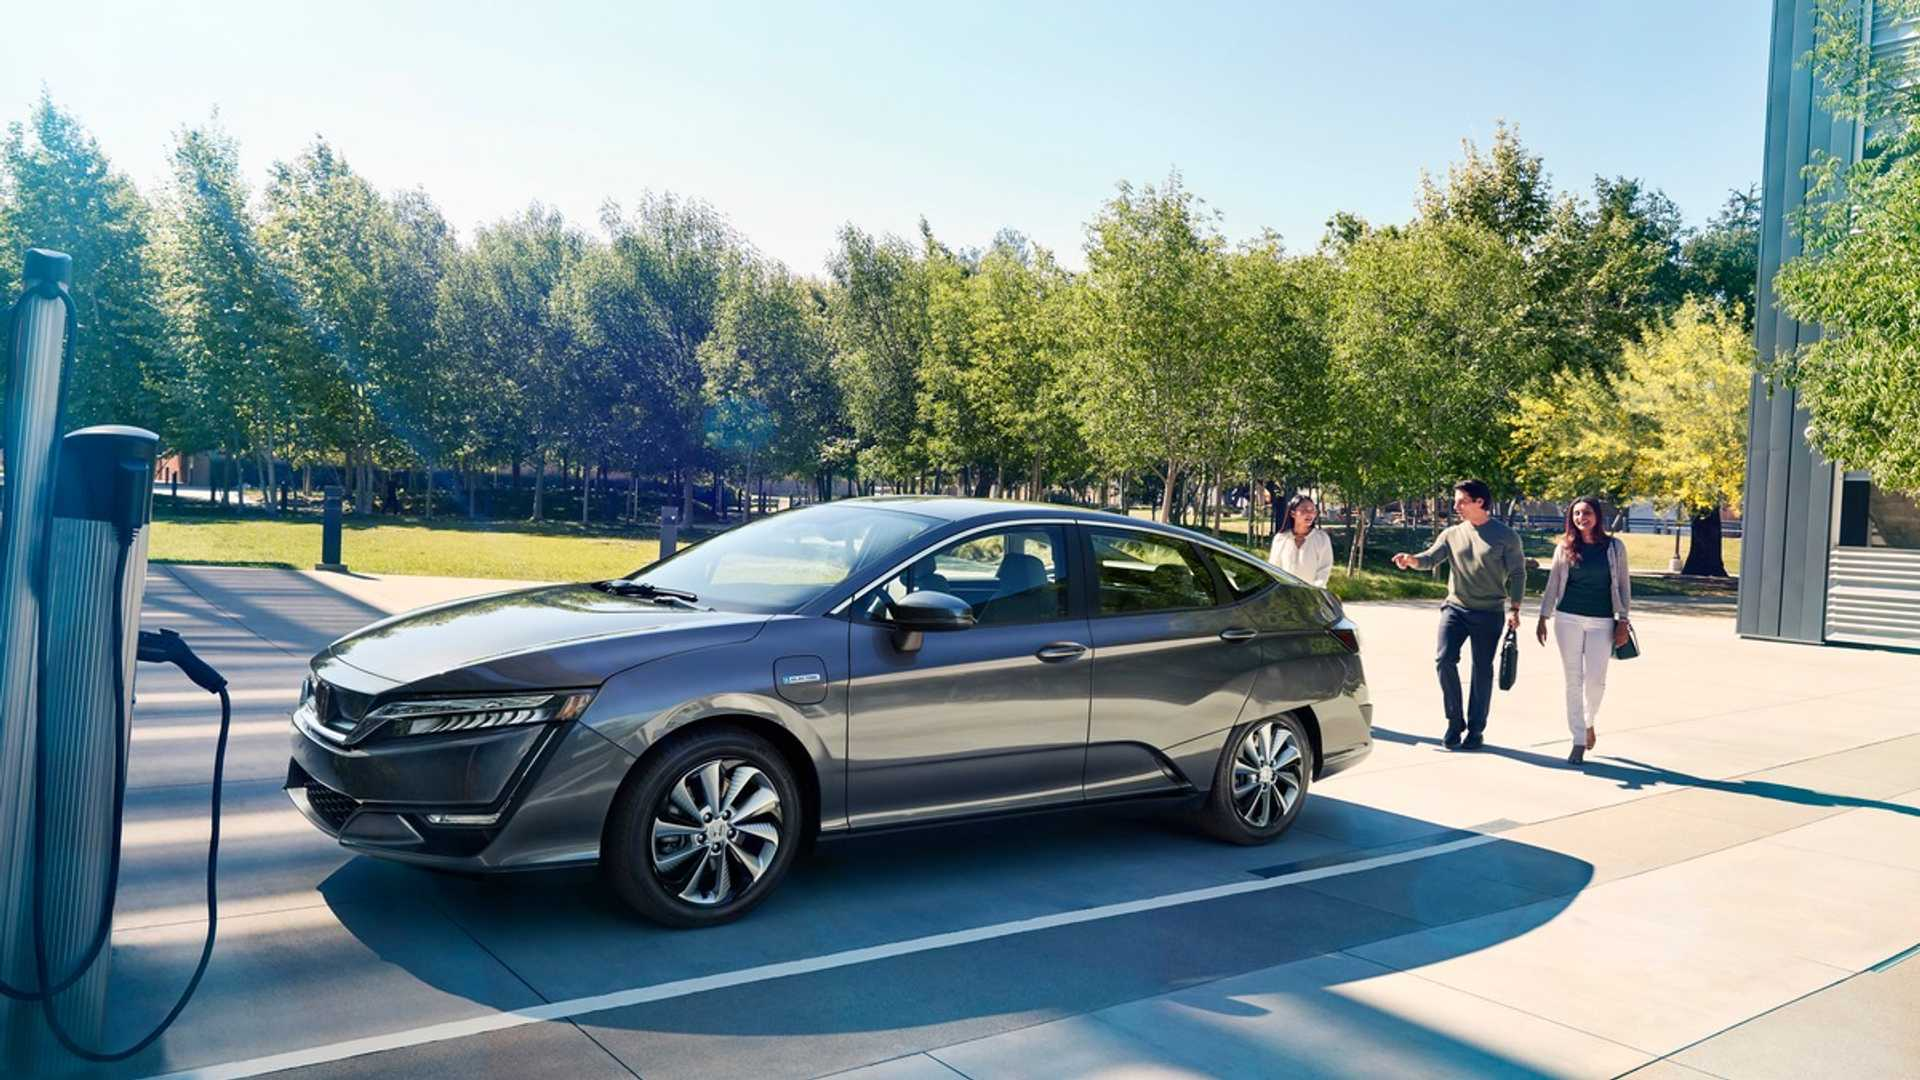 Top Mainstream Plug-In Hybrids In The U.S. - July, 2020